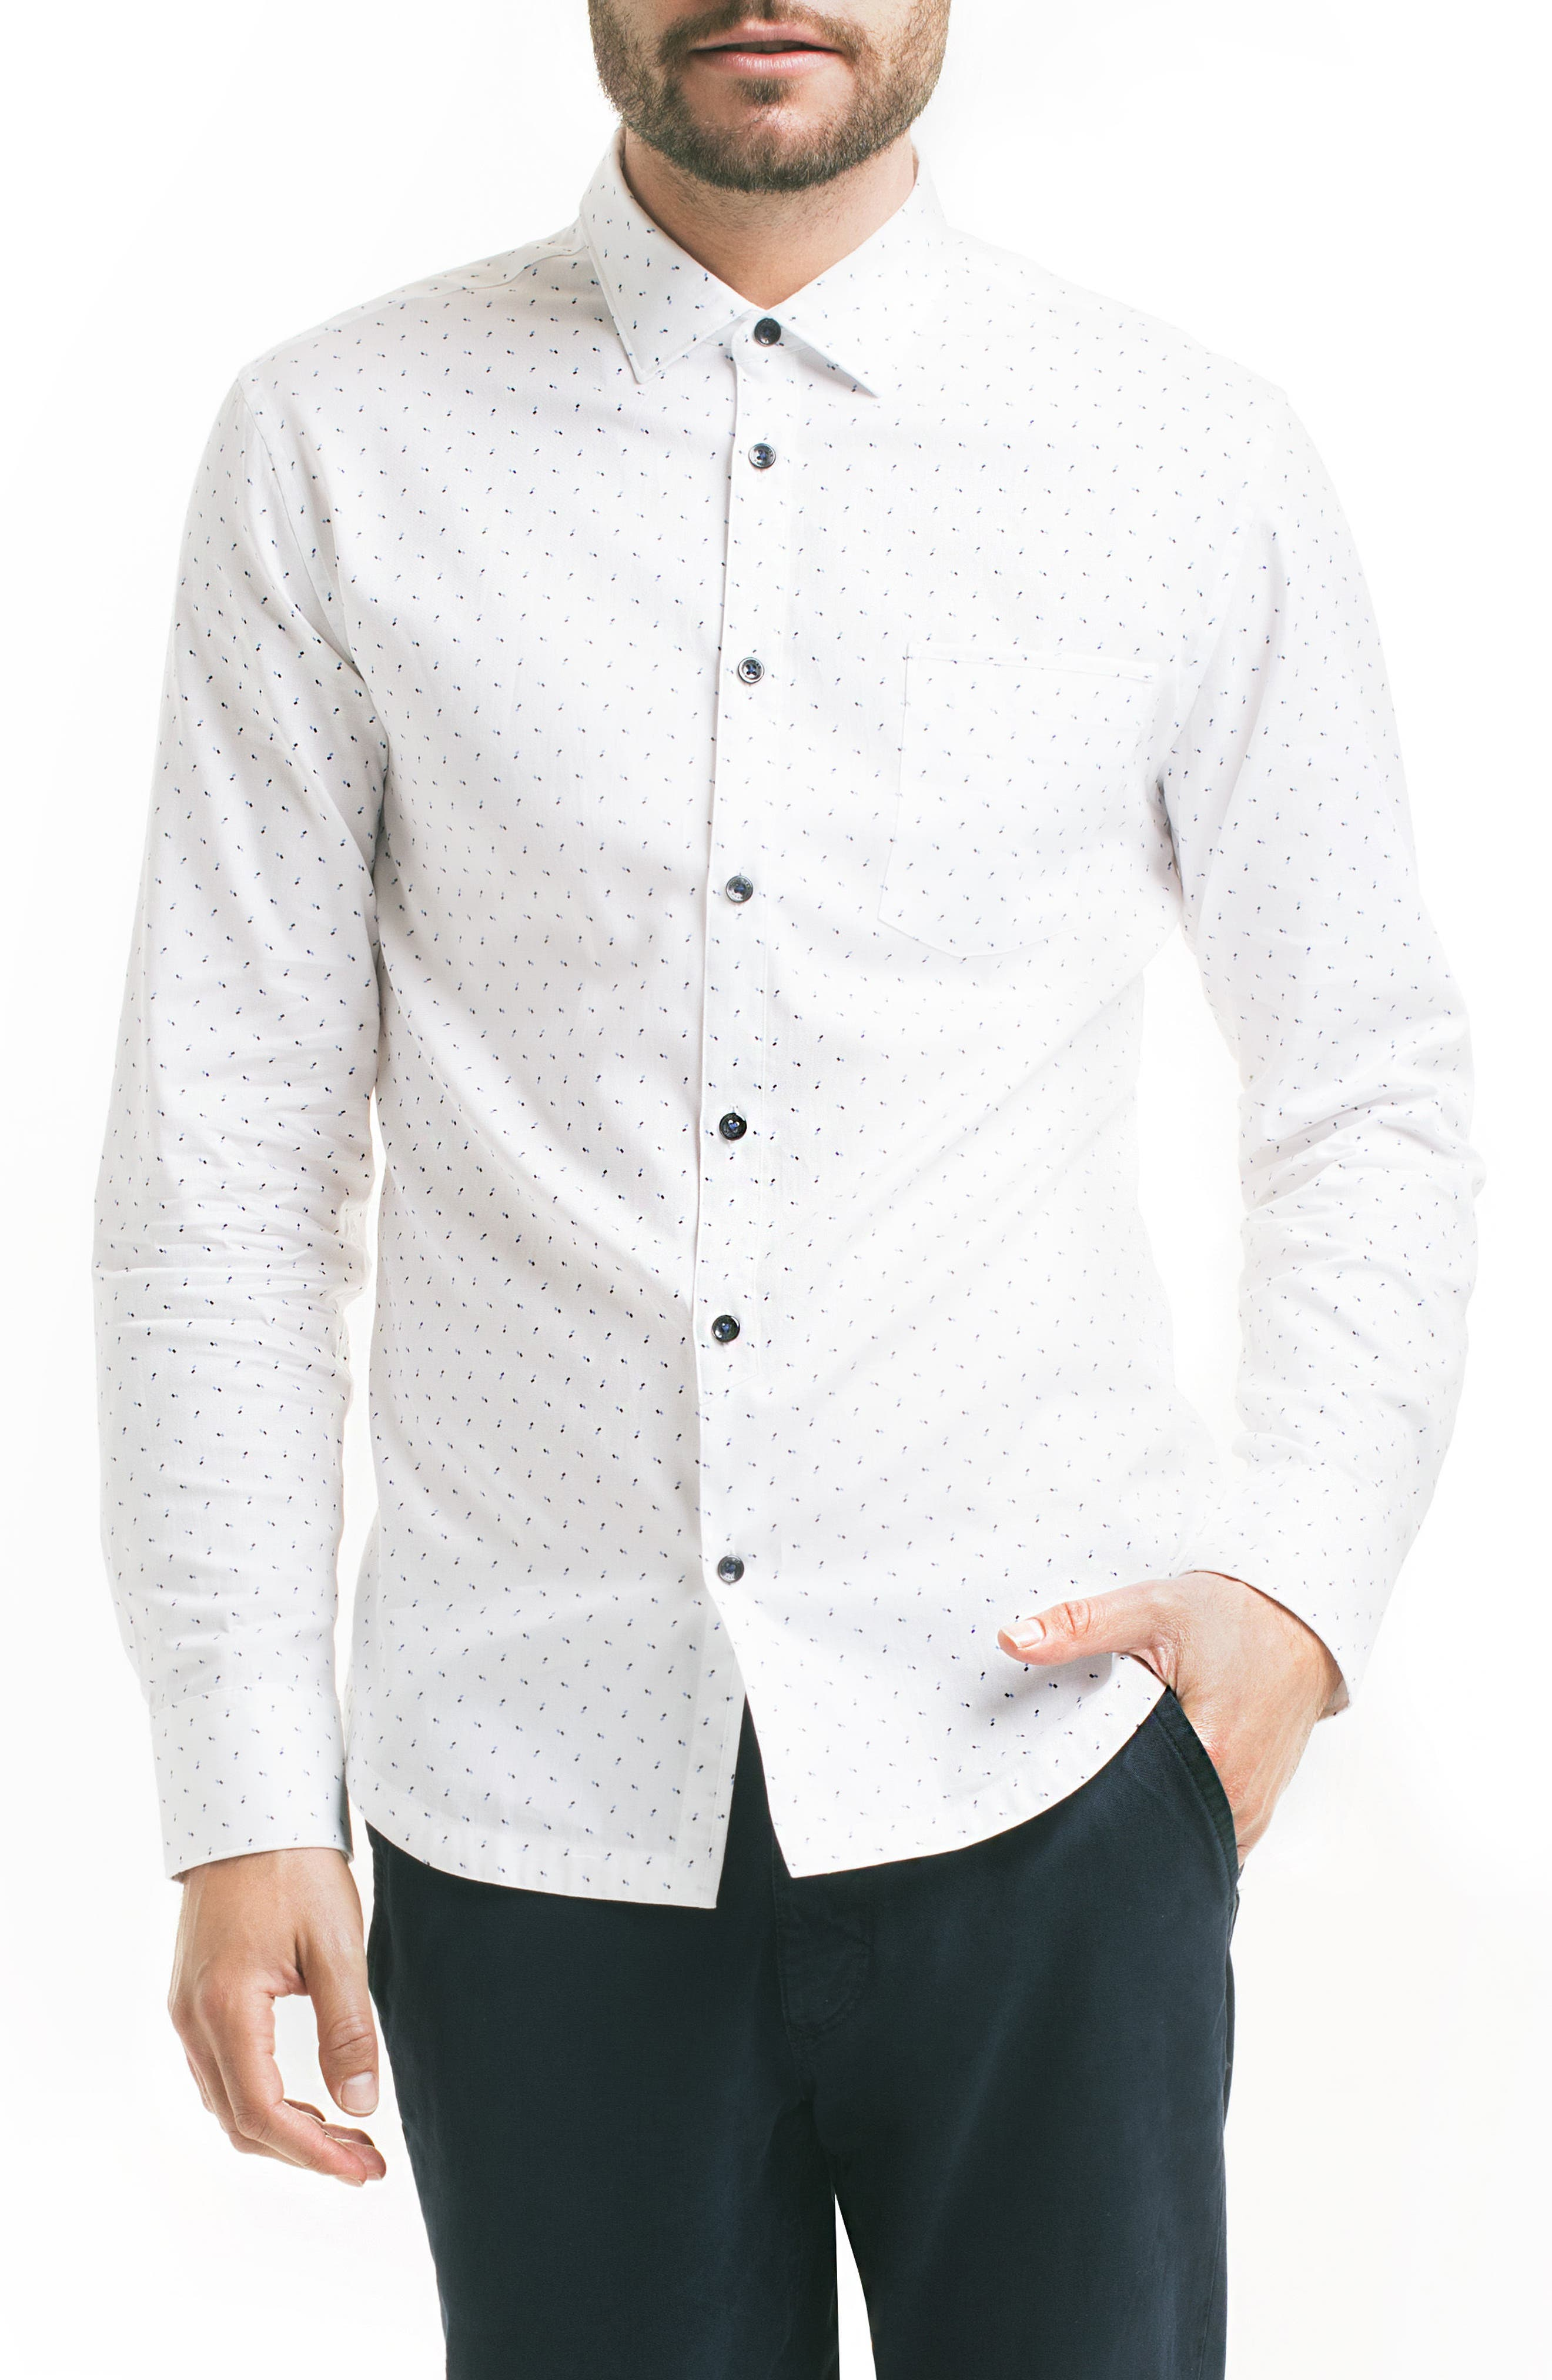 Alternate Image 1 Selected - Good Man Brand Slim Fit Pattern Sport Shirt